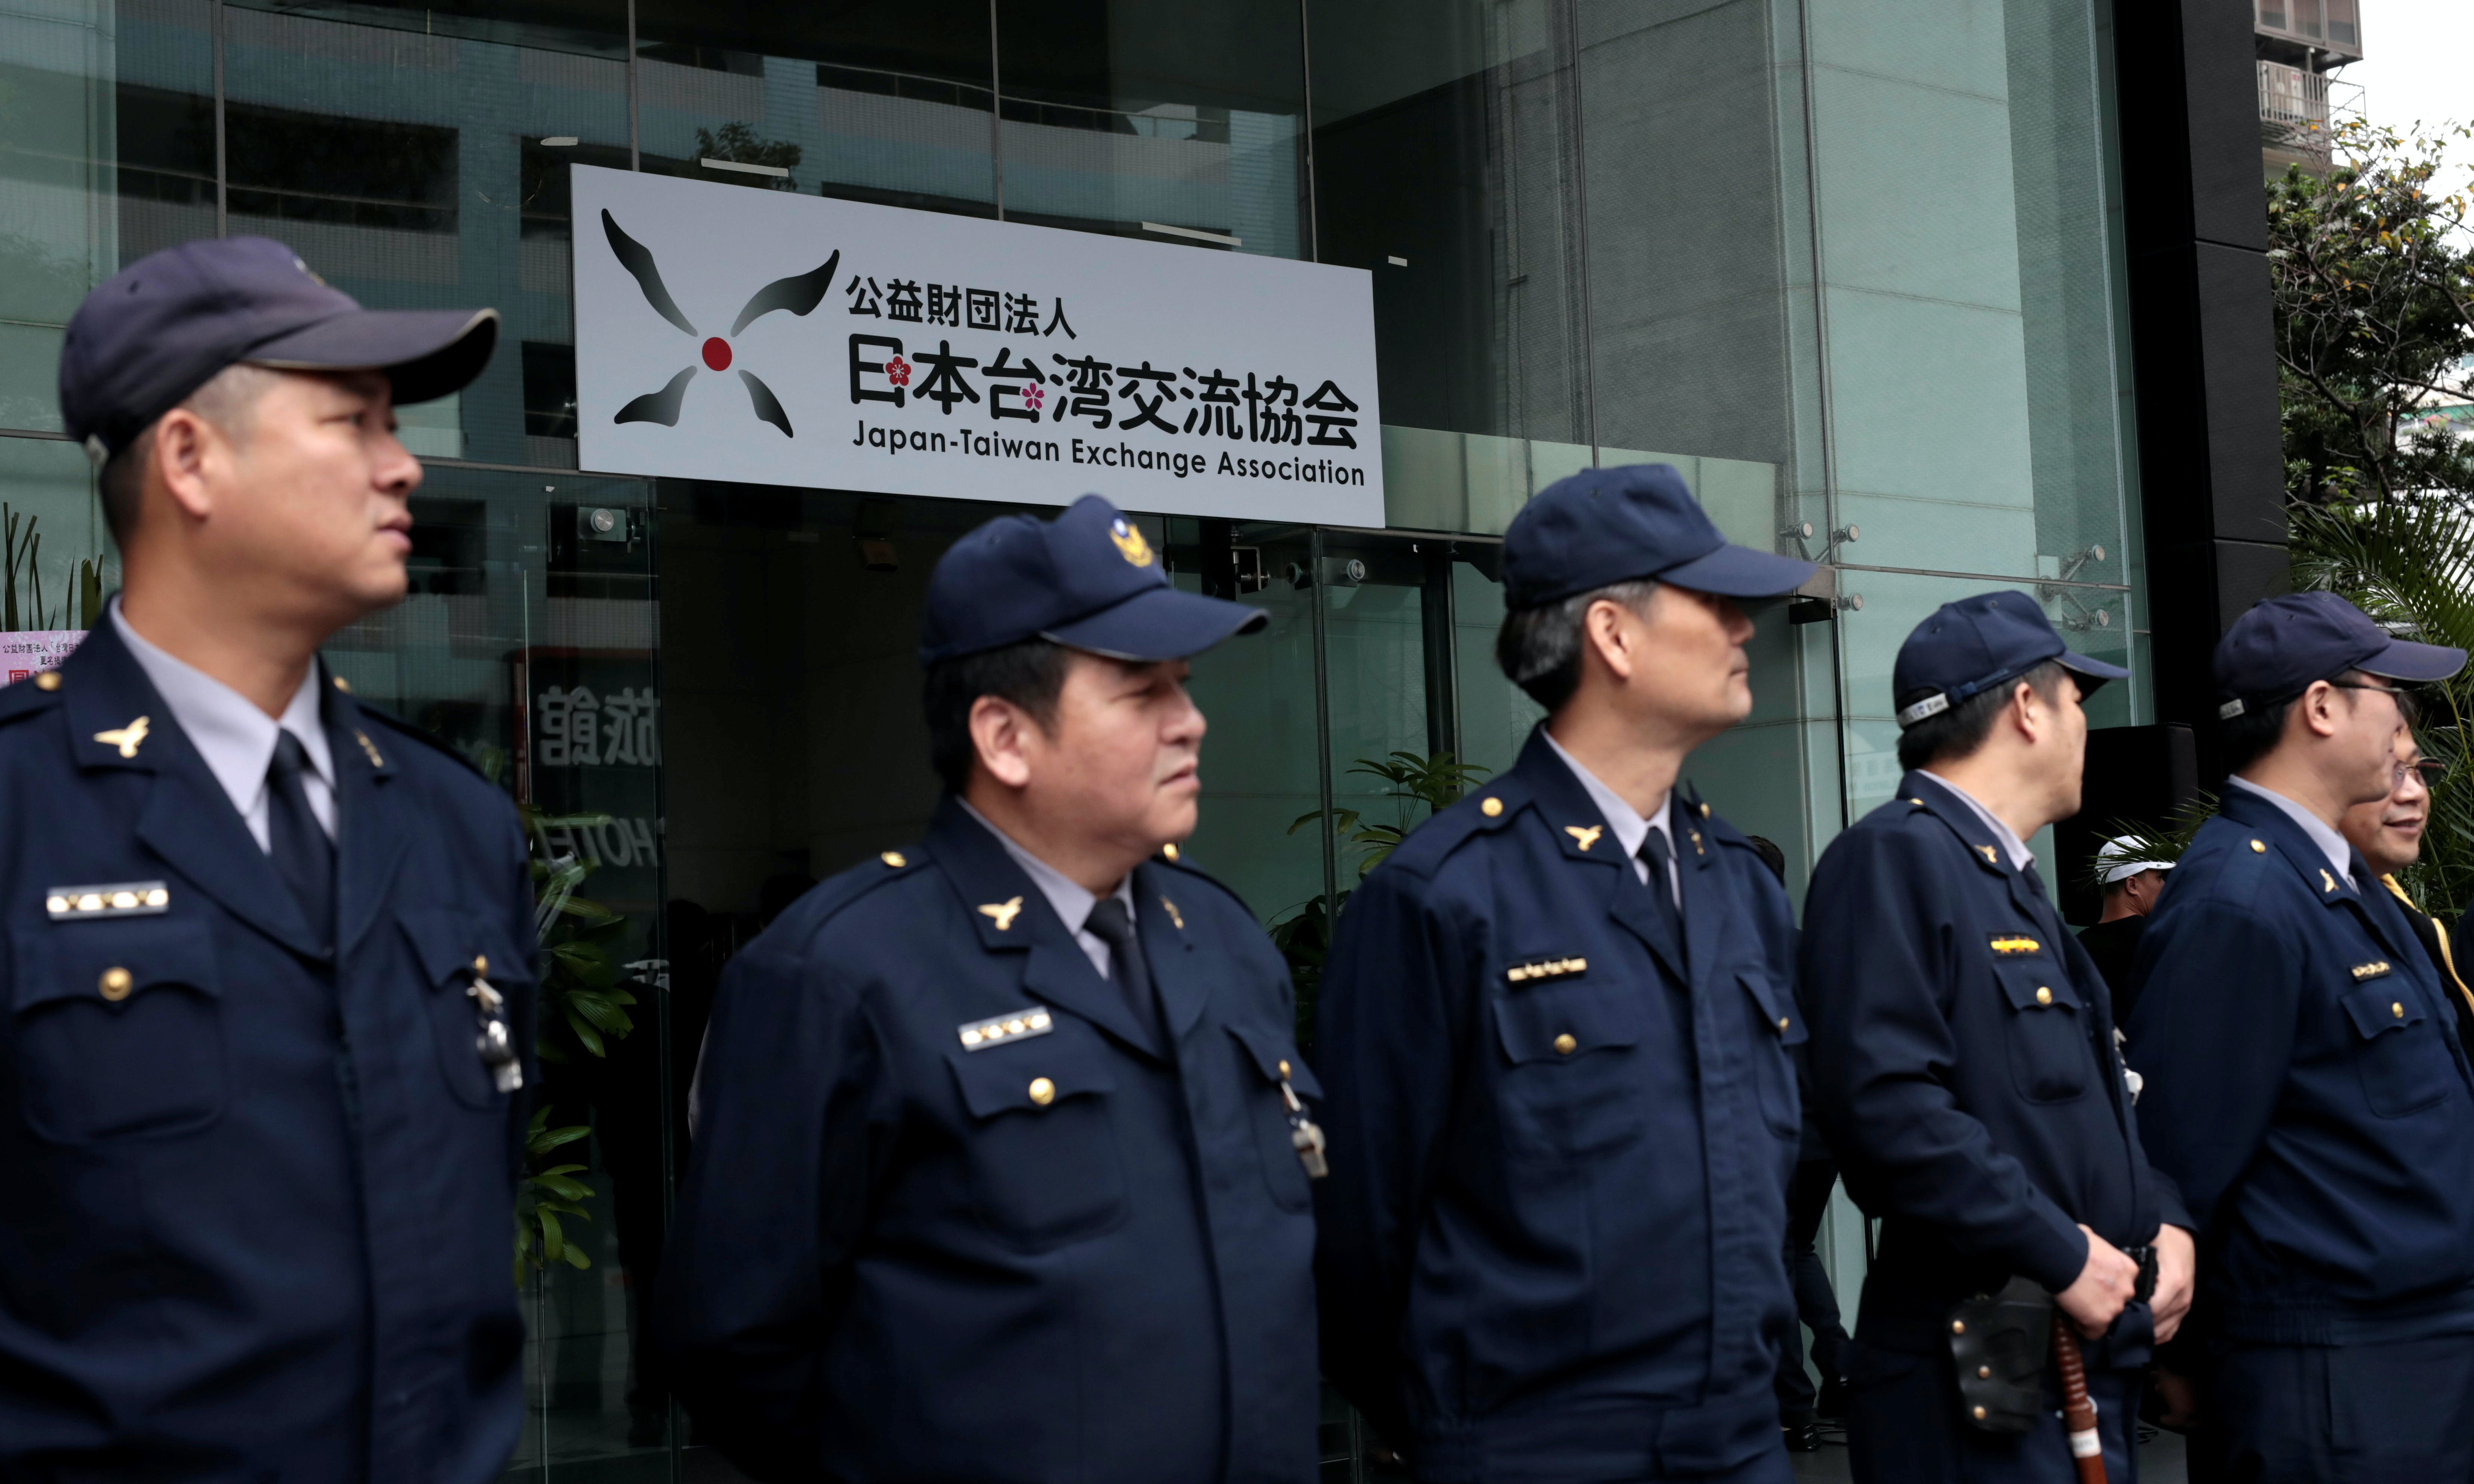 Taiwan News: Pro-China Unification Group Paint Bombs Japan's De Facto Embassy